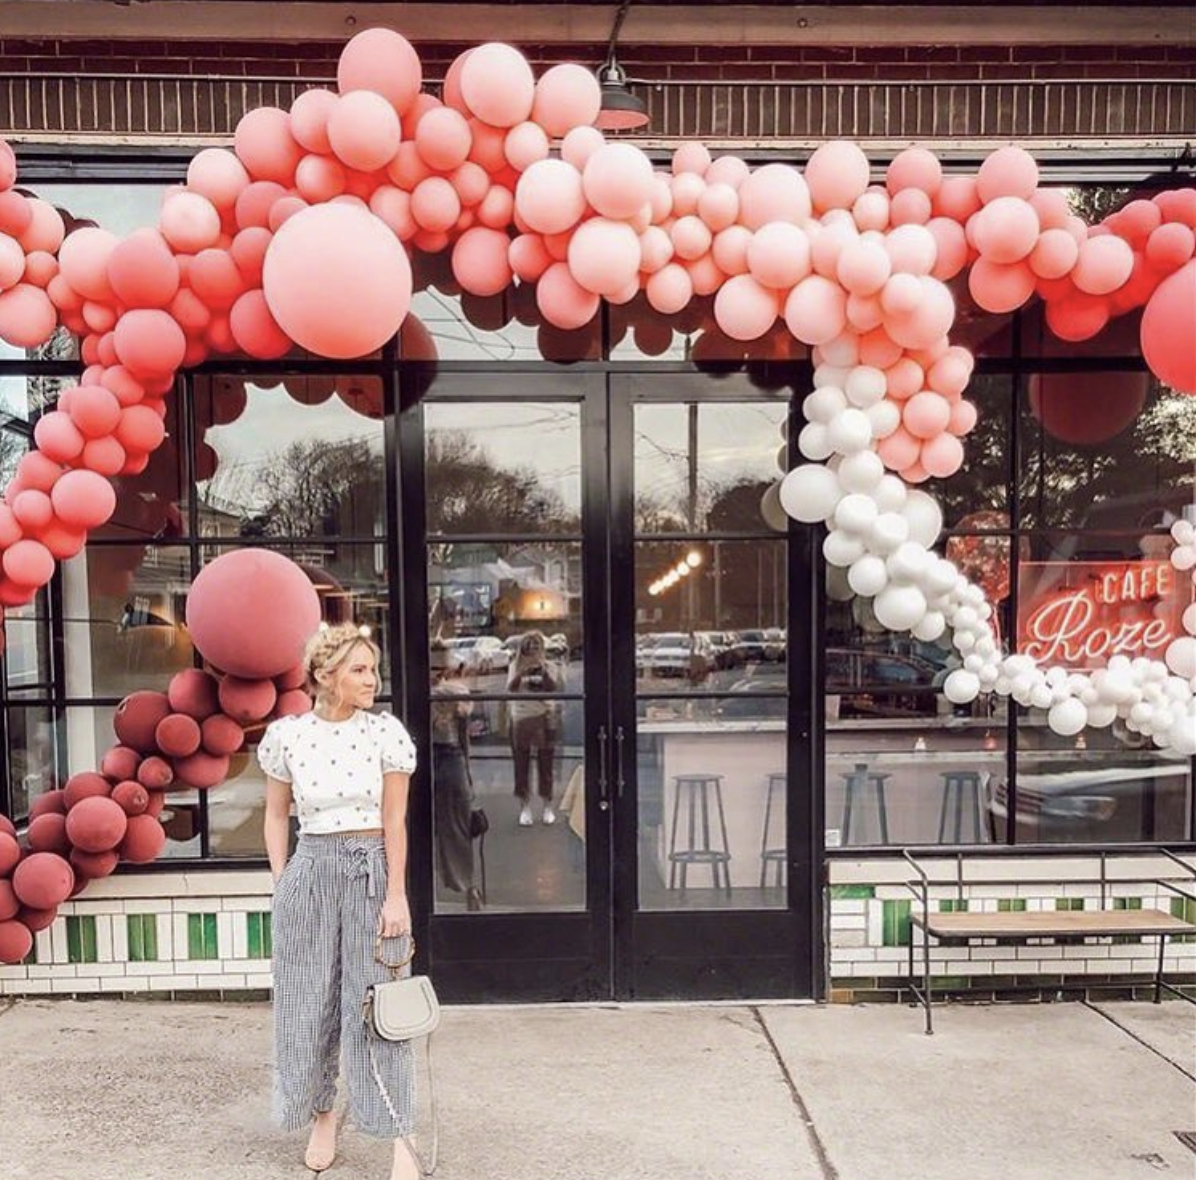 vroom_vroom_balloon_cafe_roze_vroom_vroom_balloon_organic_balloon_installation.png